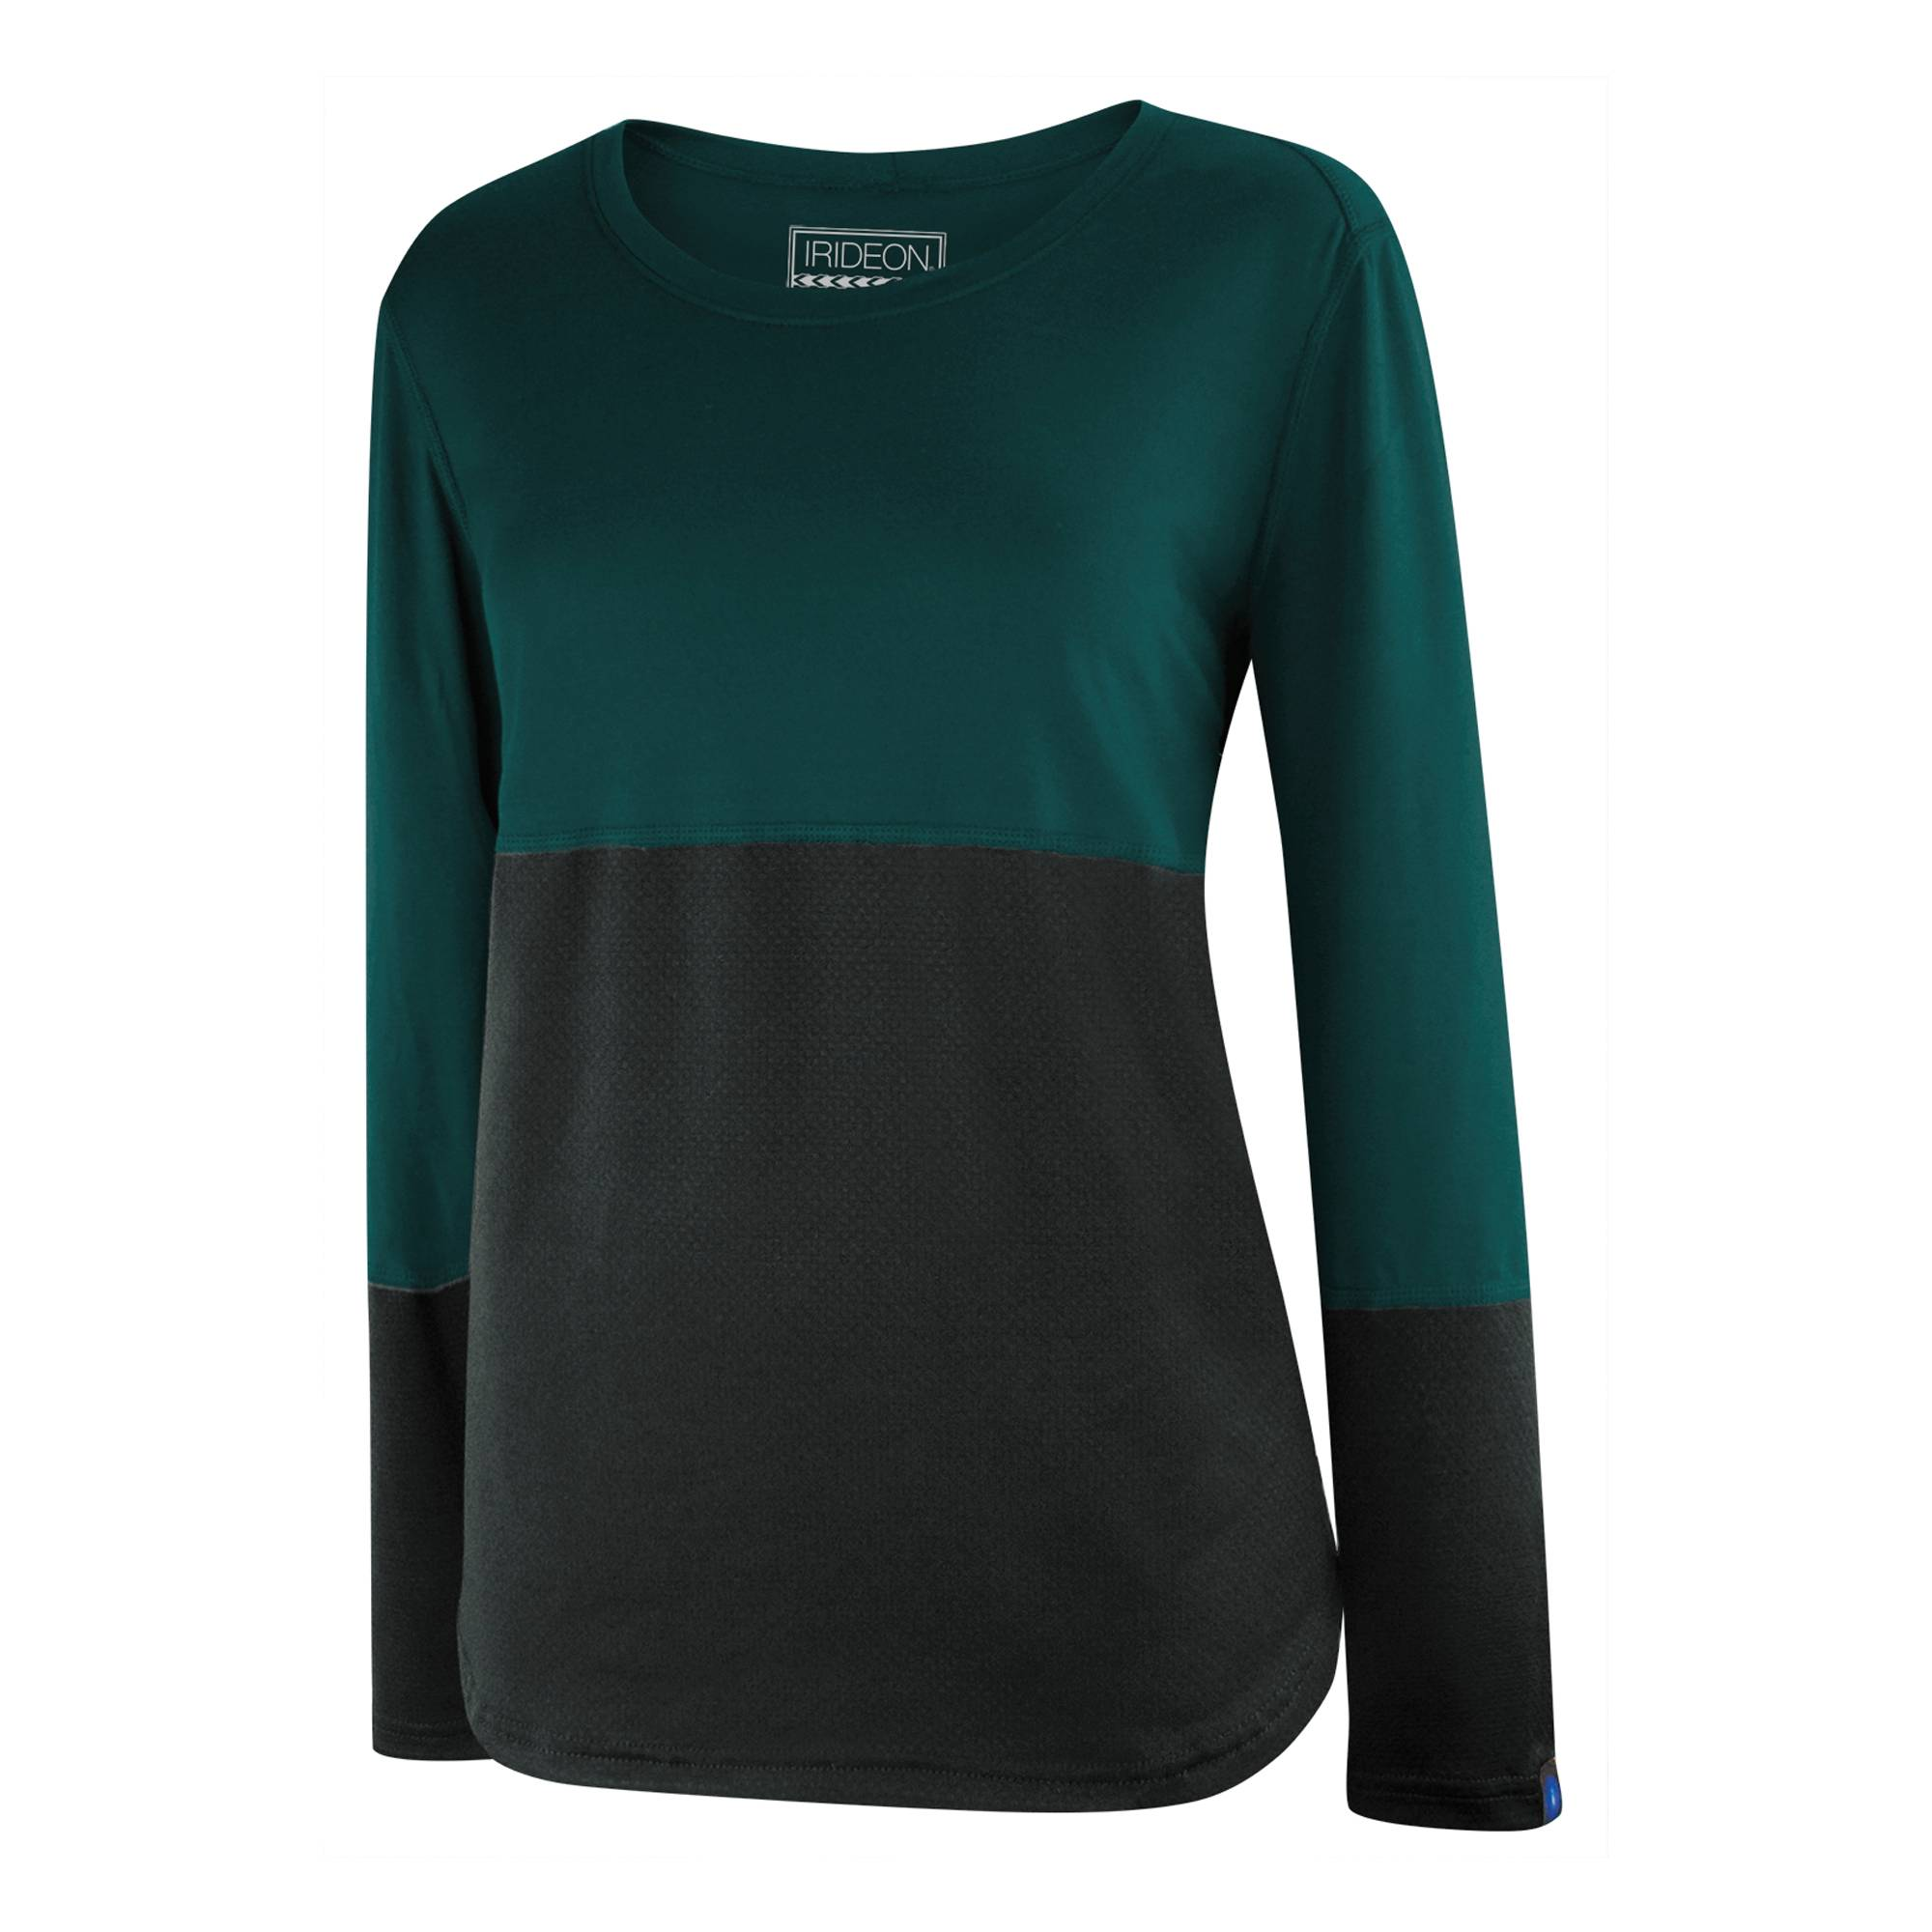 Irideon Ladies' Thermaluxe Tech Top